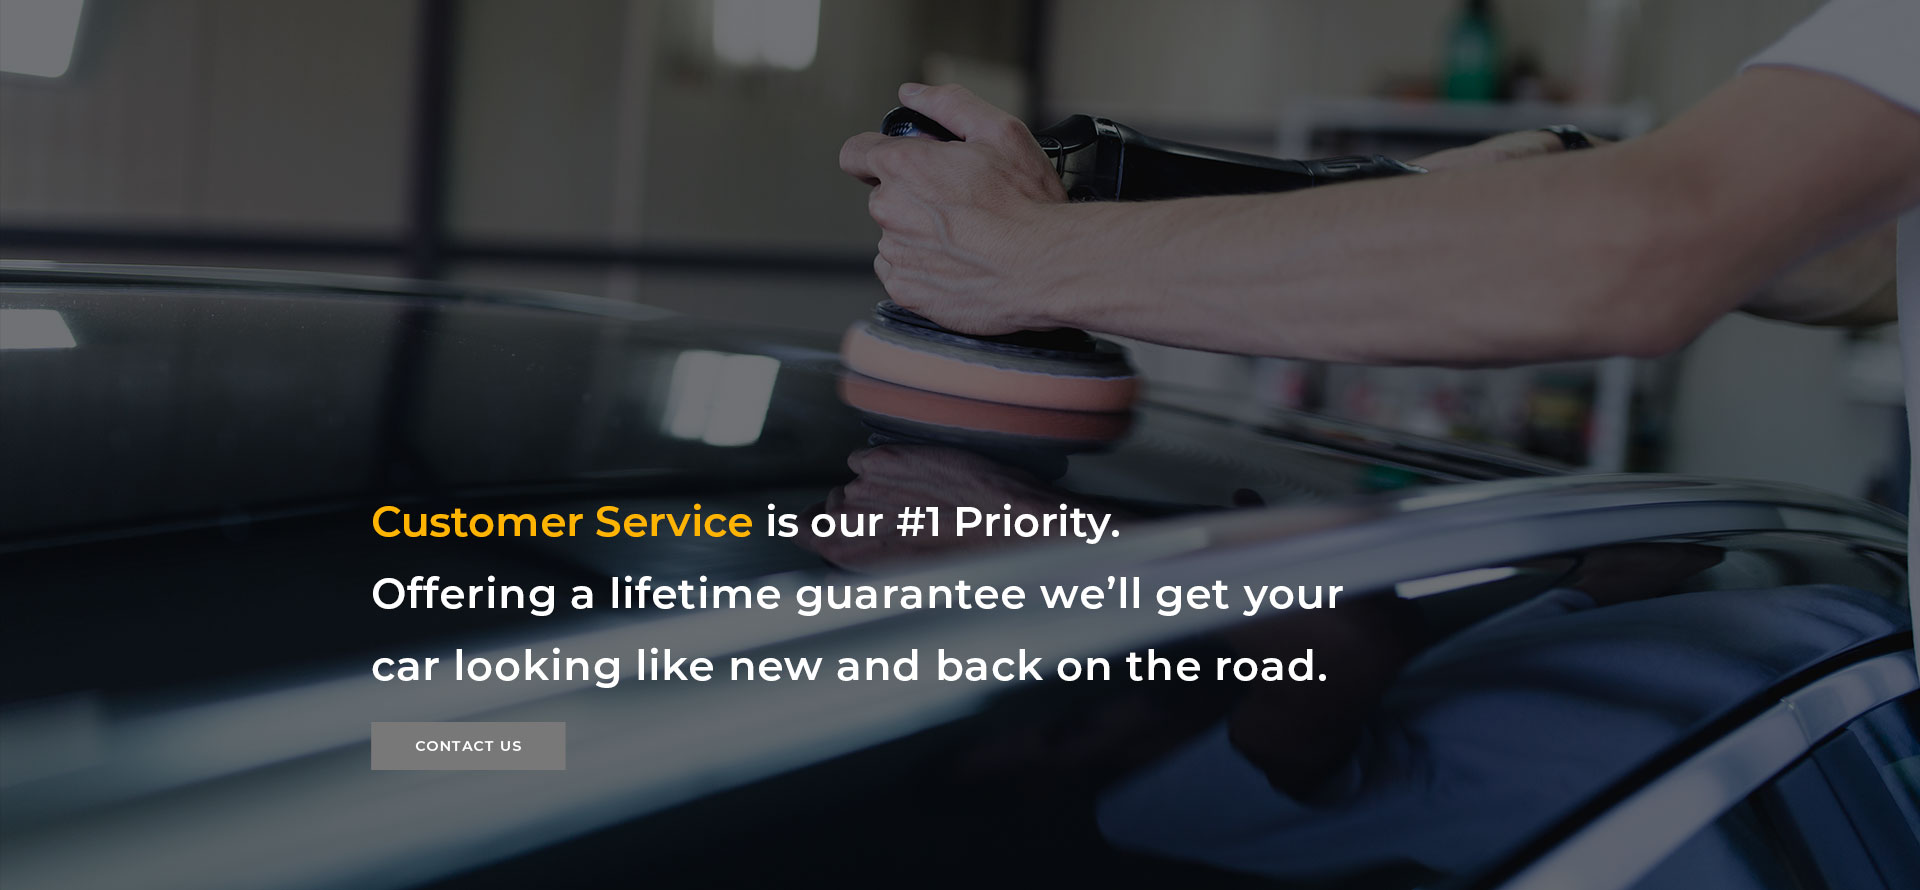 Customer Service is our #1 Priority. Offering a lifetime guarantee we'll get your car looking like new and back on the road.